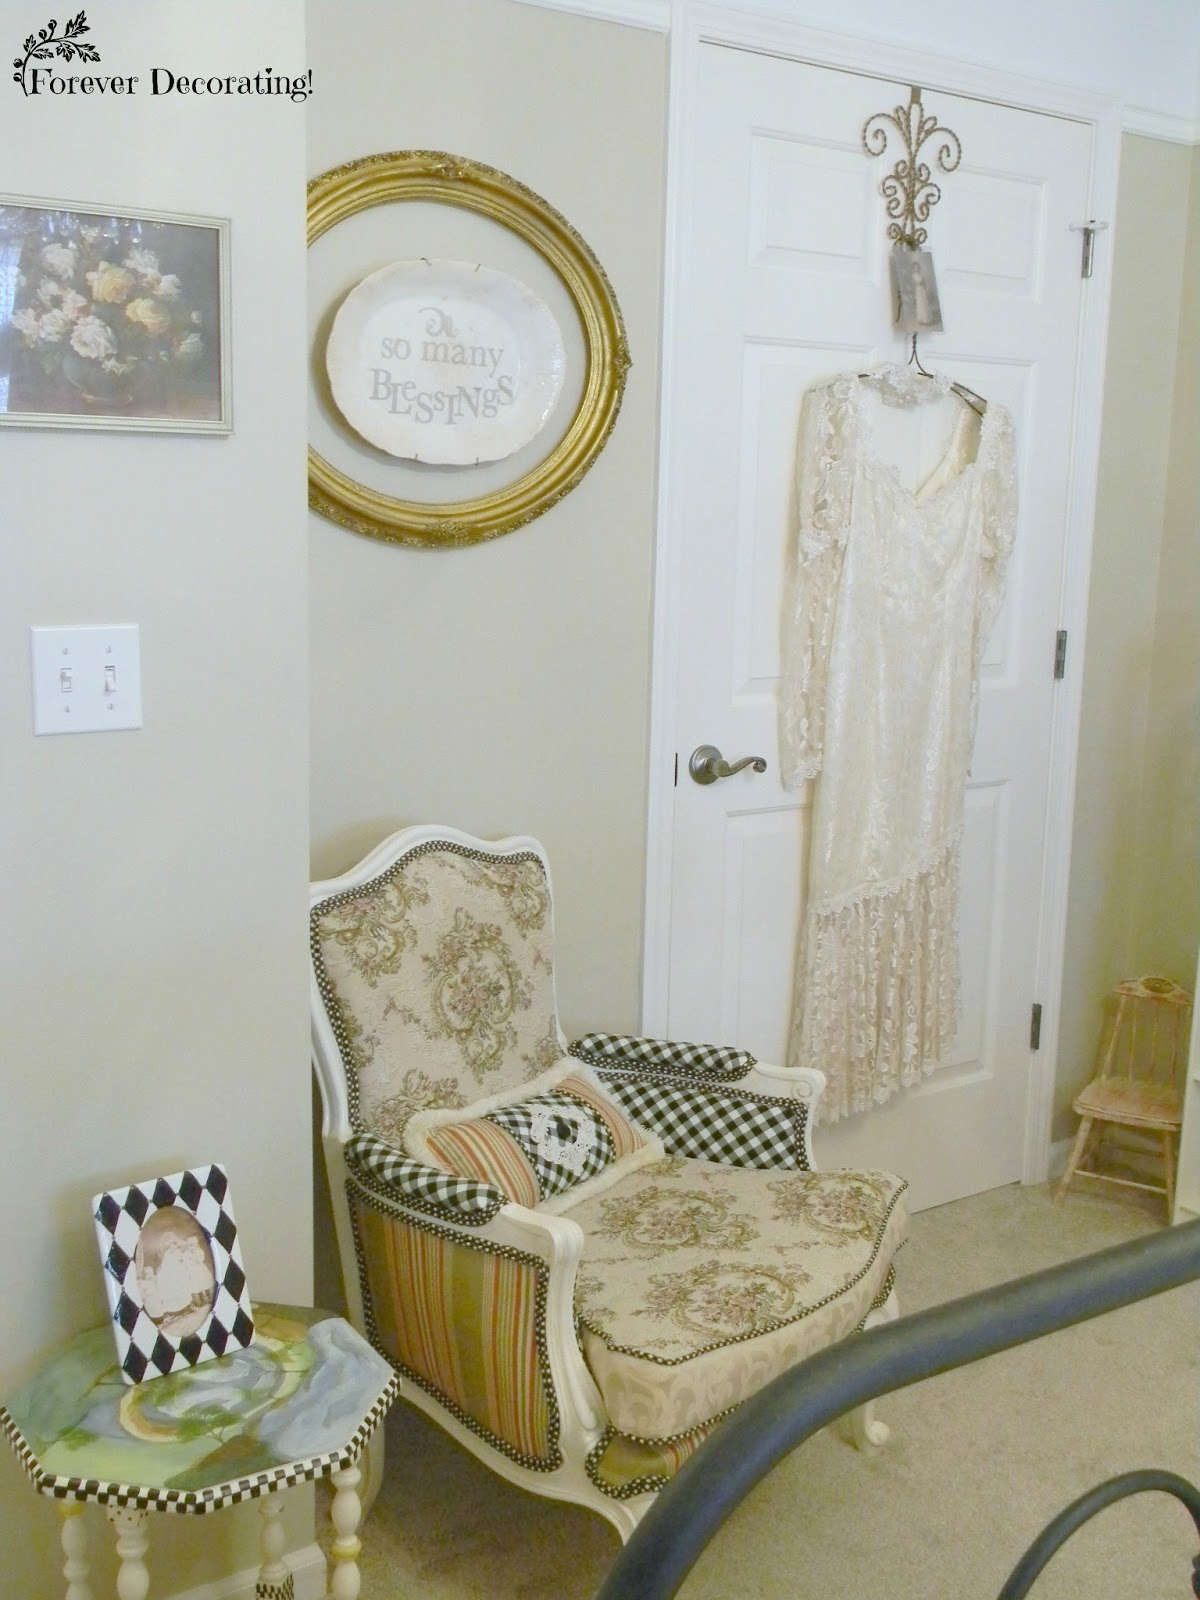 Forever Decorating Guest Bathroom Tour: Forever Decorating!: Magazine Feature